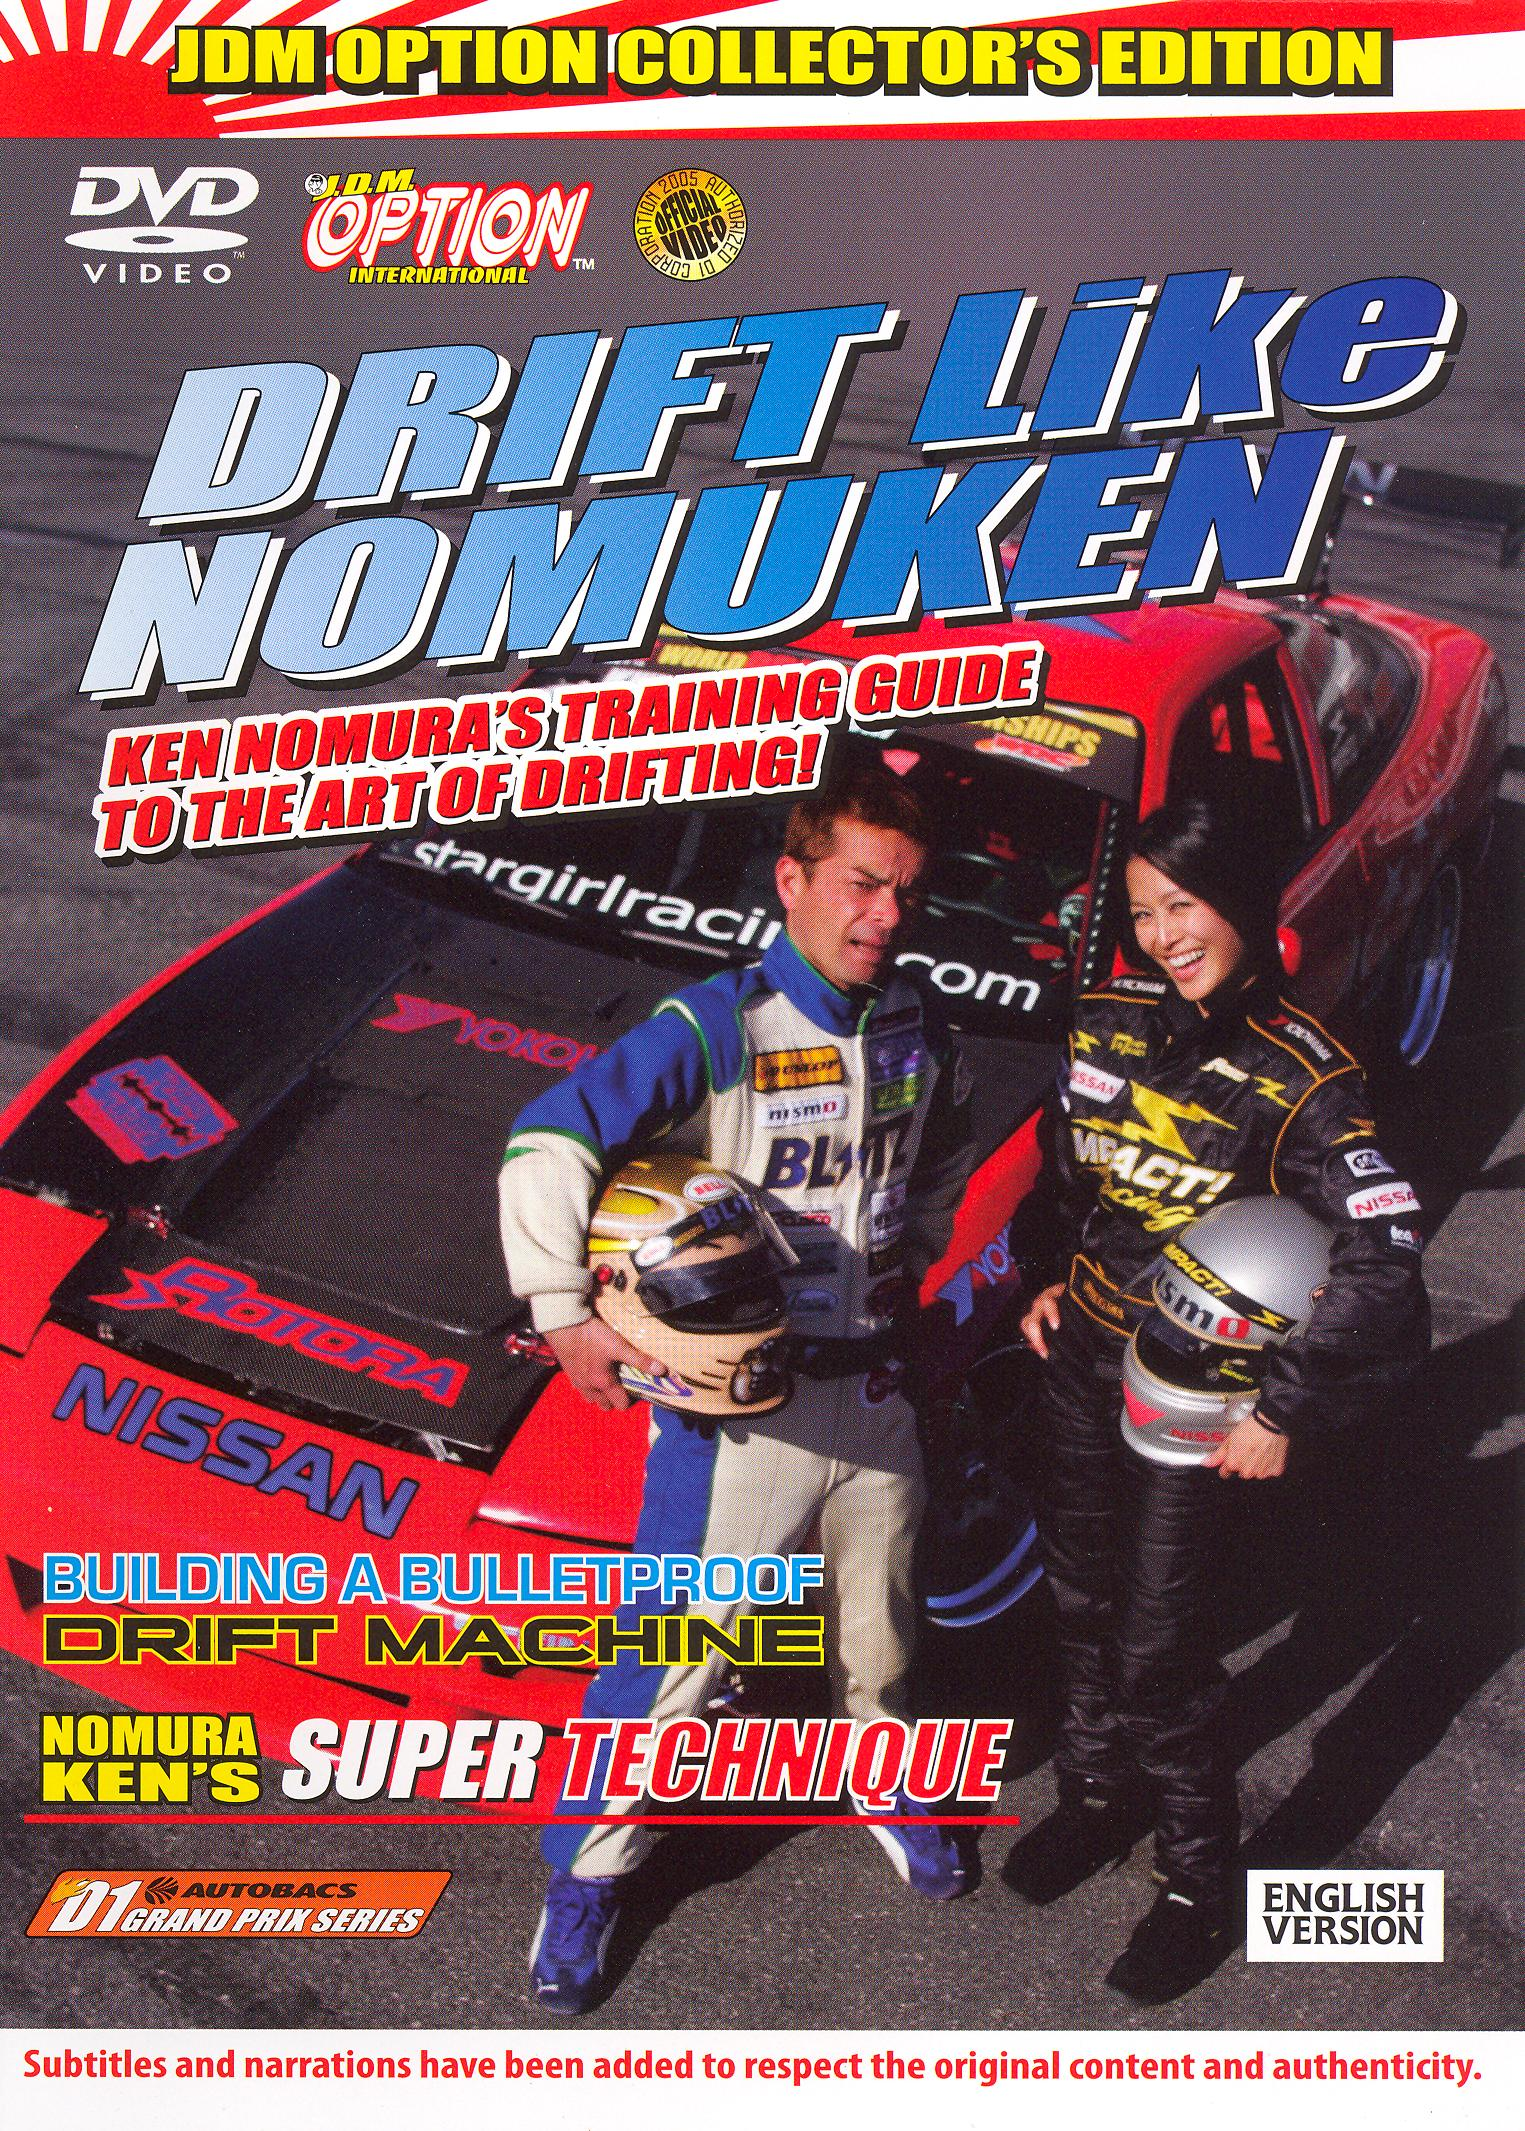 J.D.M. Option International: Drift Like Nomuken